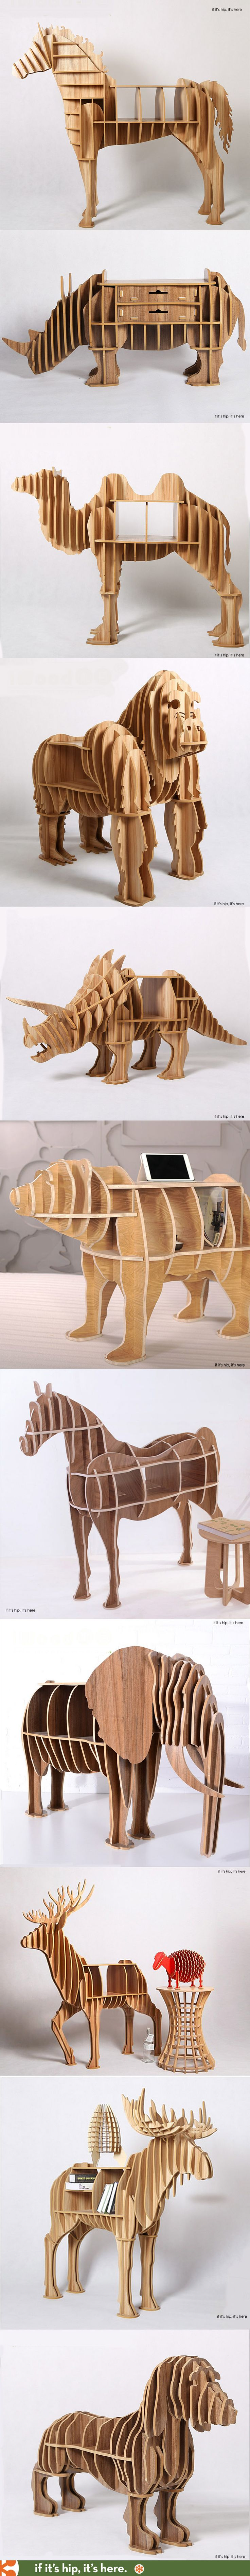 The 20 most awesome animal bookcases, desks and end tables you can buy. They…